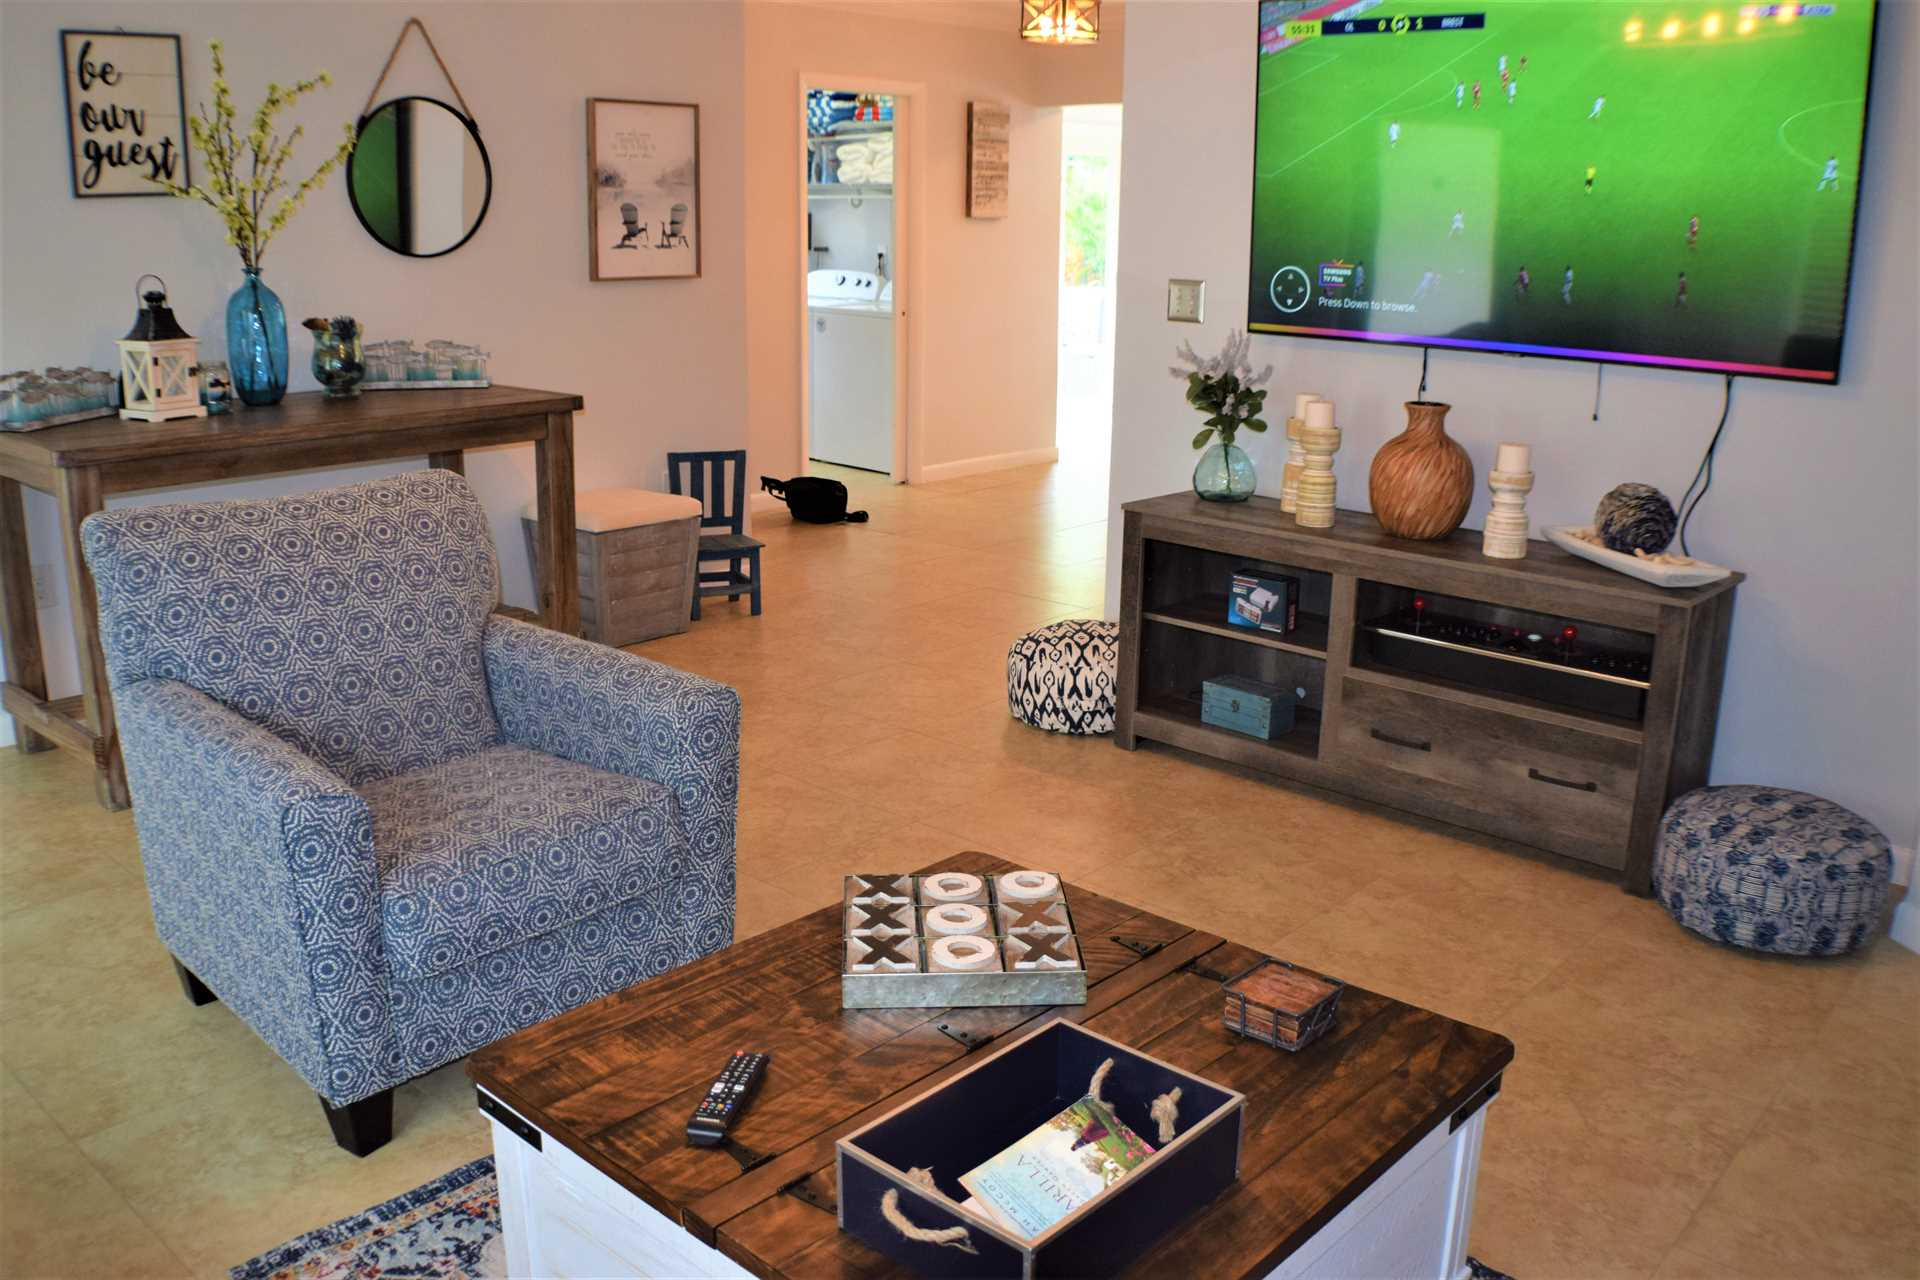 Enjoy the game in the comfortable living area